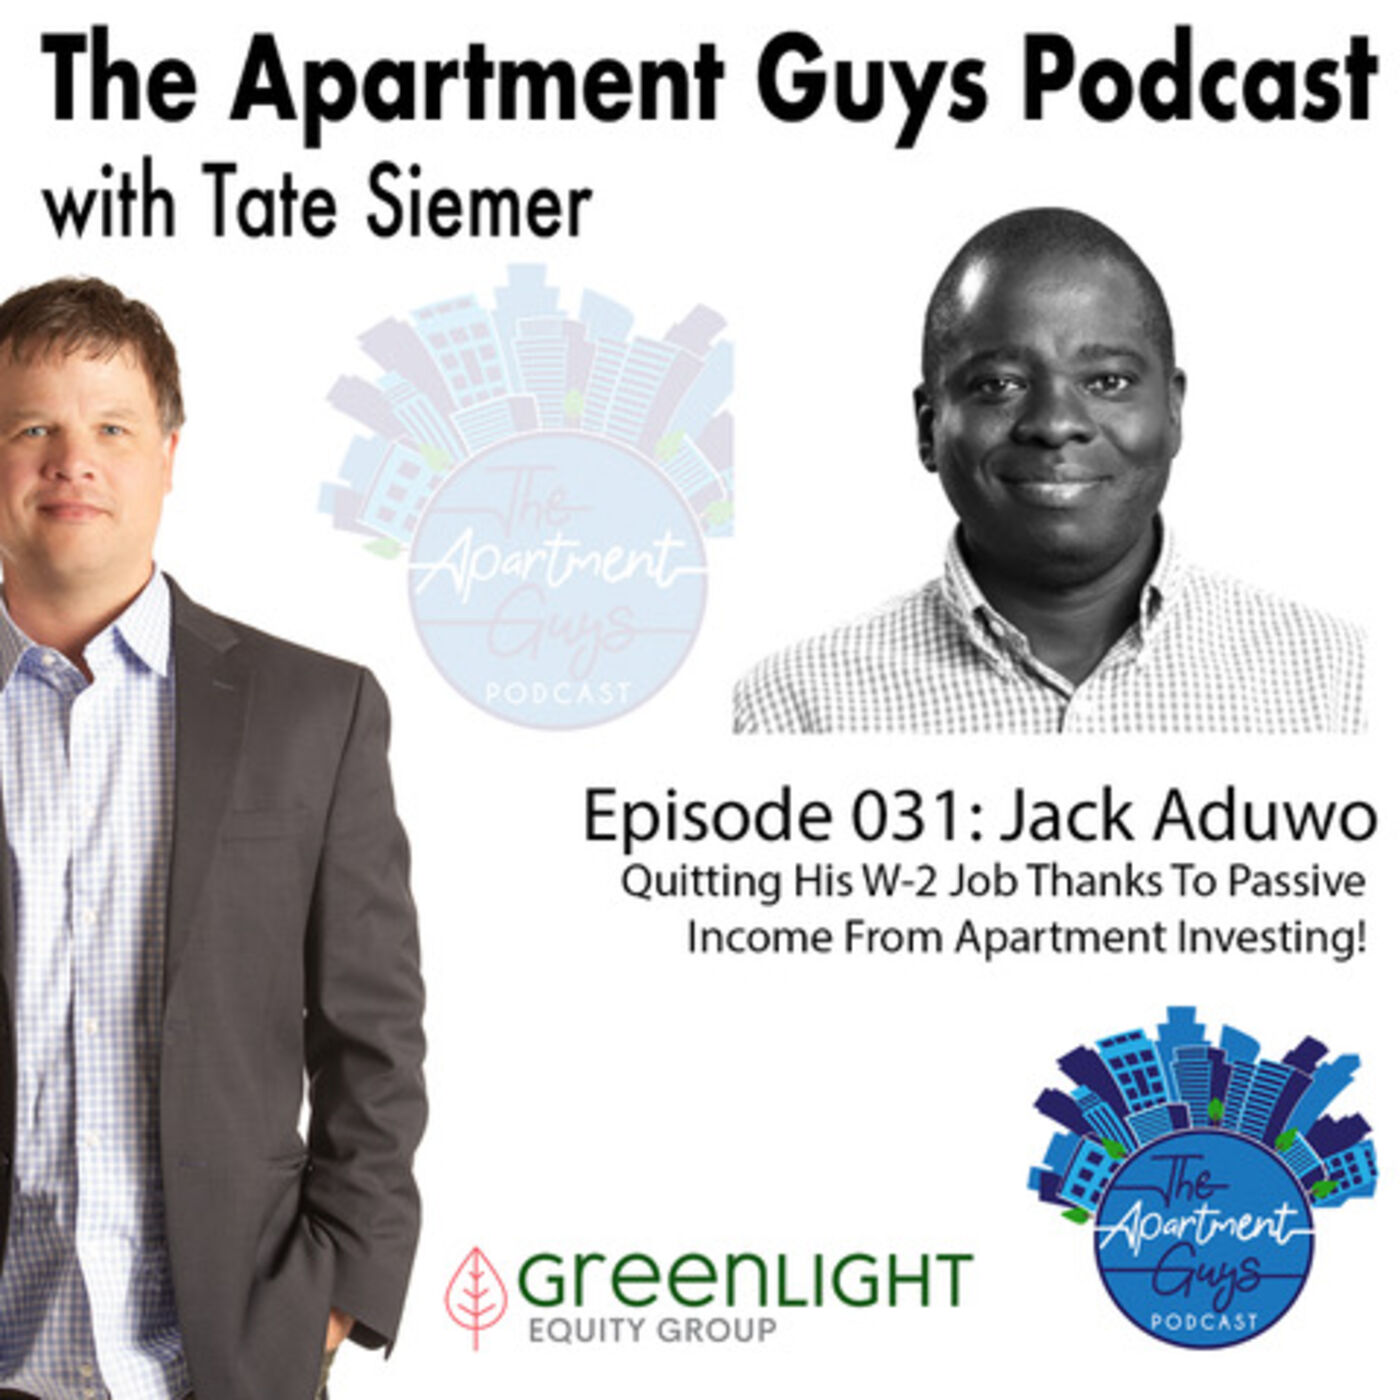 Episode 031: Jack Aduwo-Quitting His W-2 Job Thanks To Passive Income From Apartments